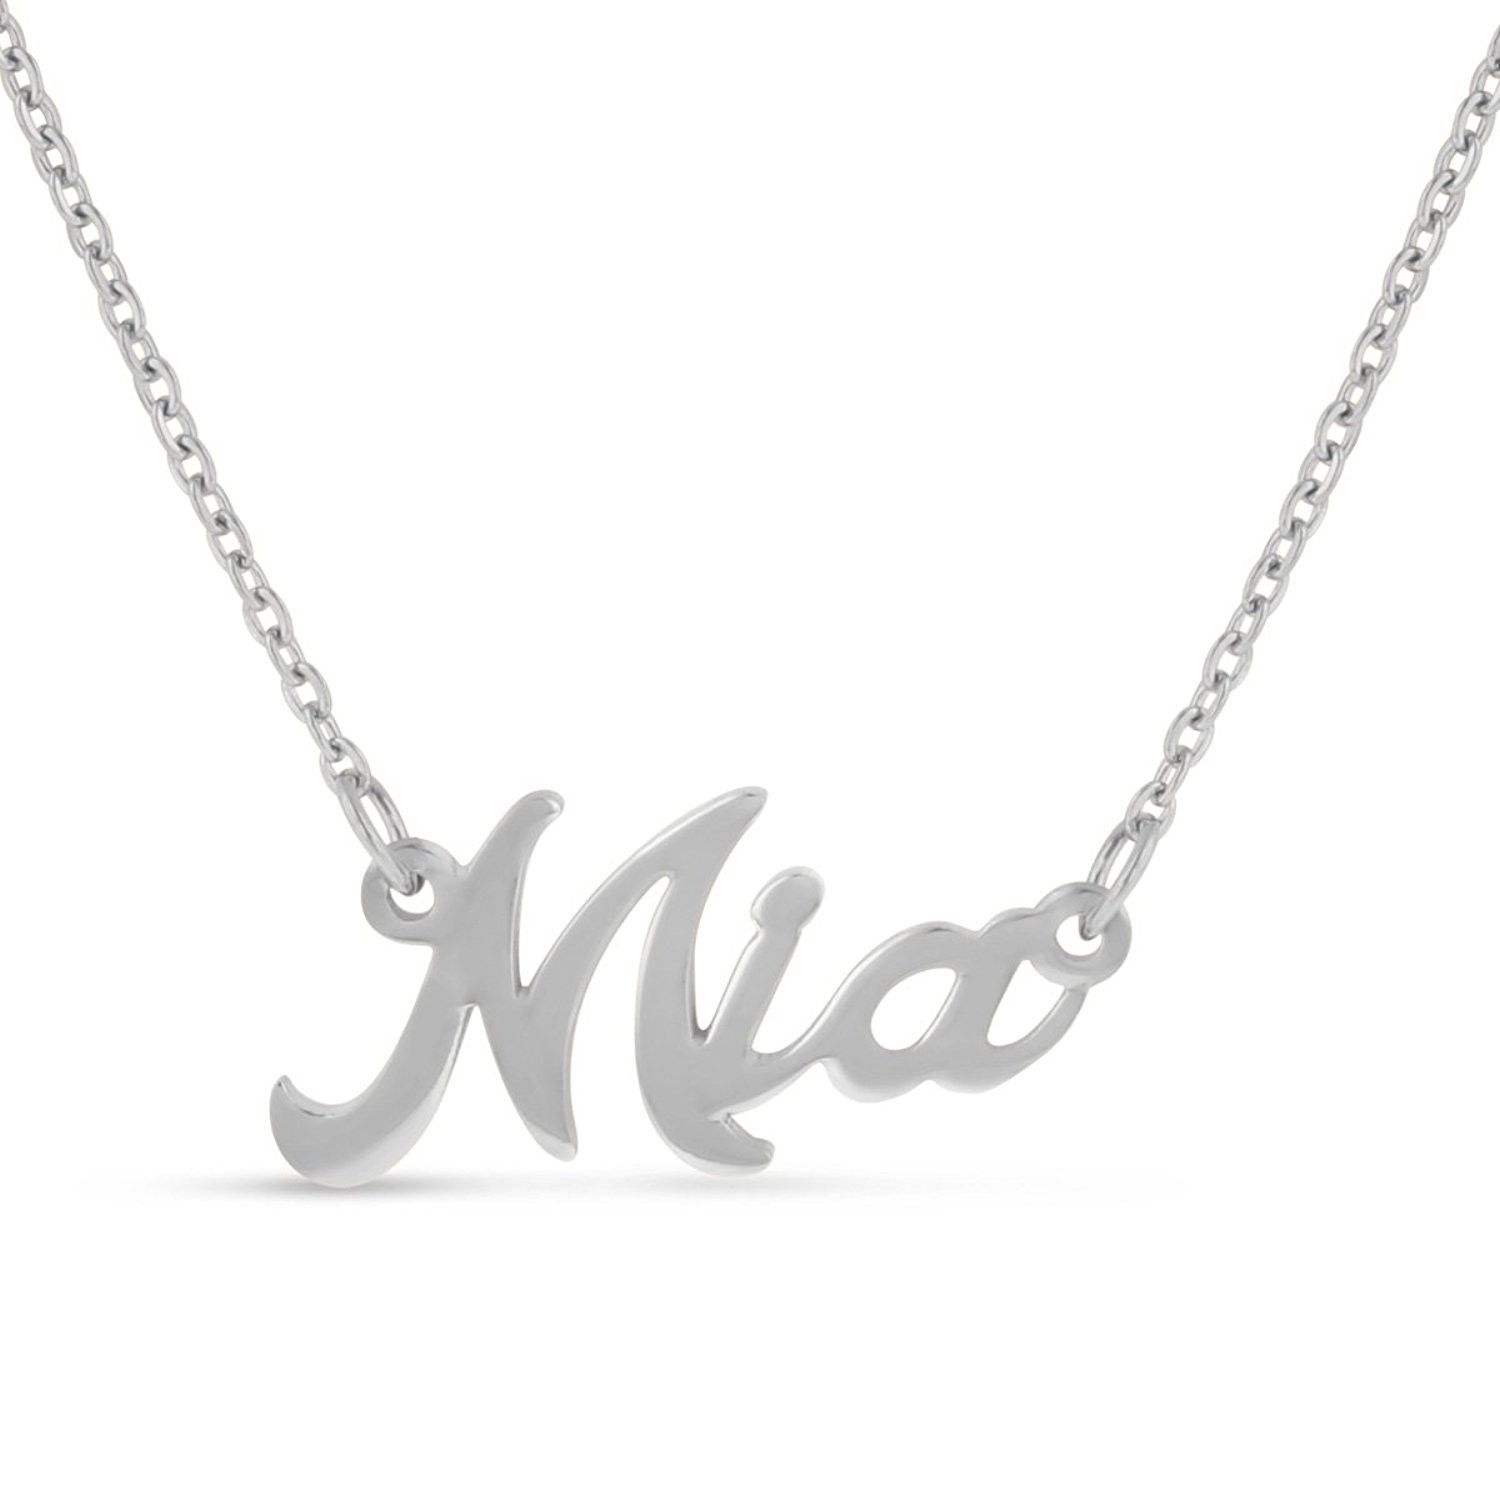 Personalized name necklace pendant in silver tone names